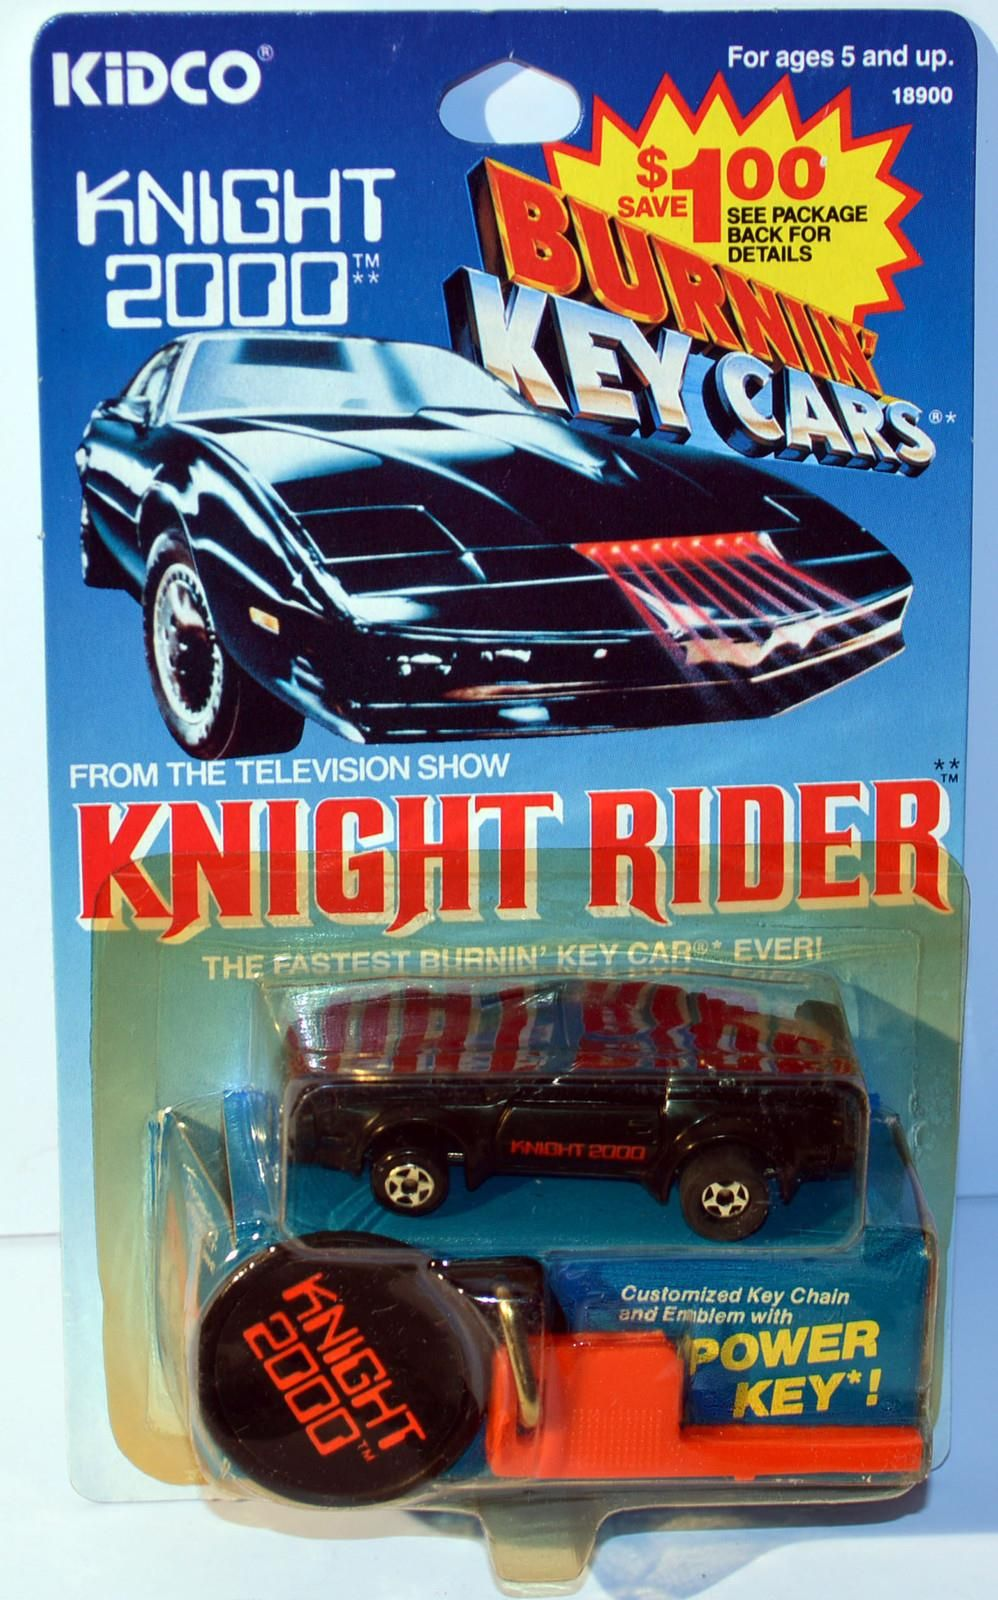 Toys car keys   Knight Rider Knight  Burninu Key Car by Kidco  Awsome us